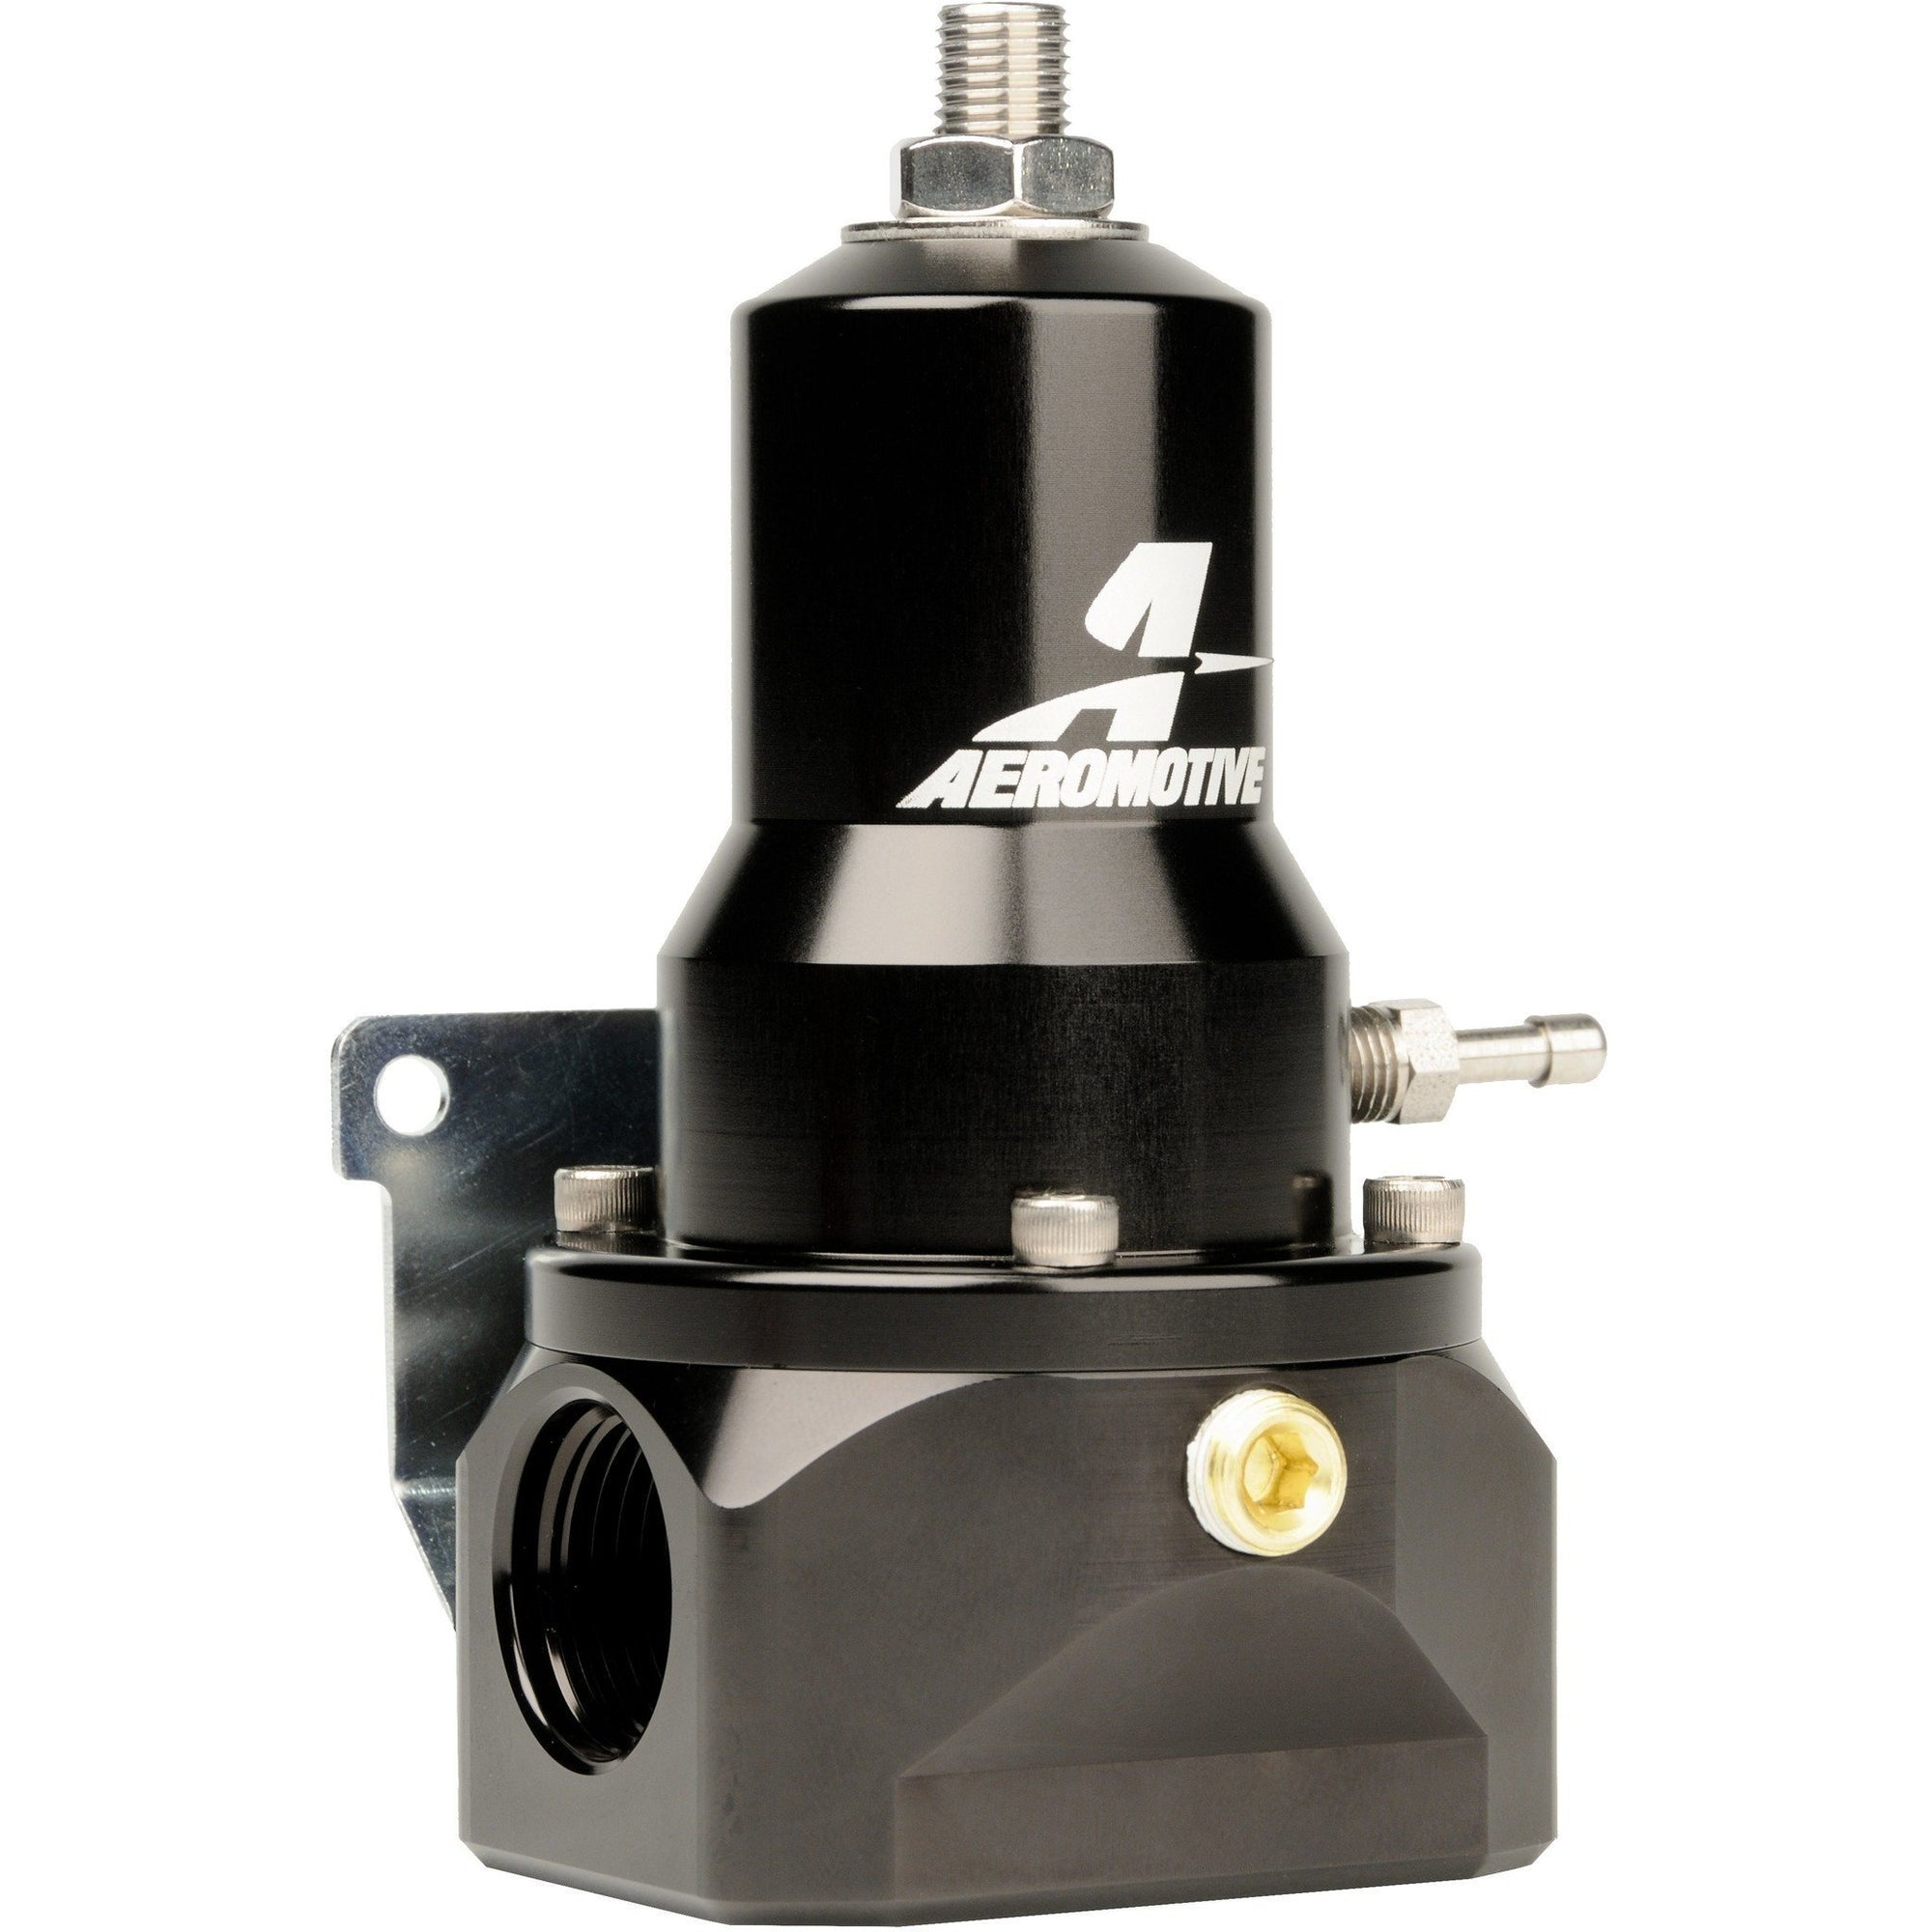 Aeromotive Extreme Flow EFI Regulator 2 port 7-26GPM 13132-Aeromotive-Motion Raceworks